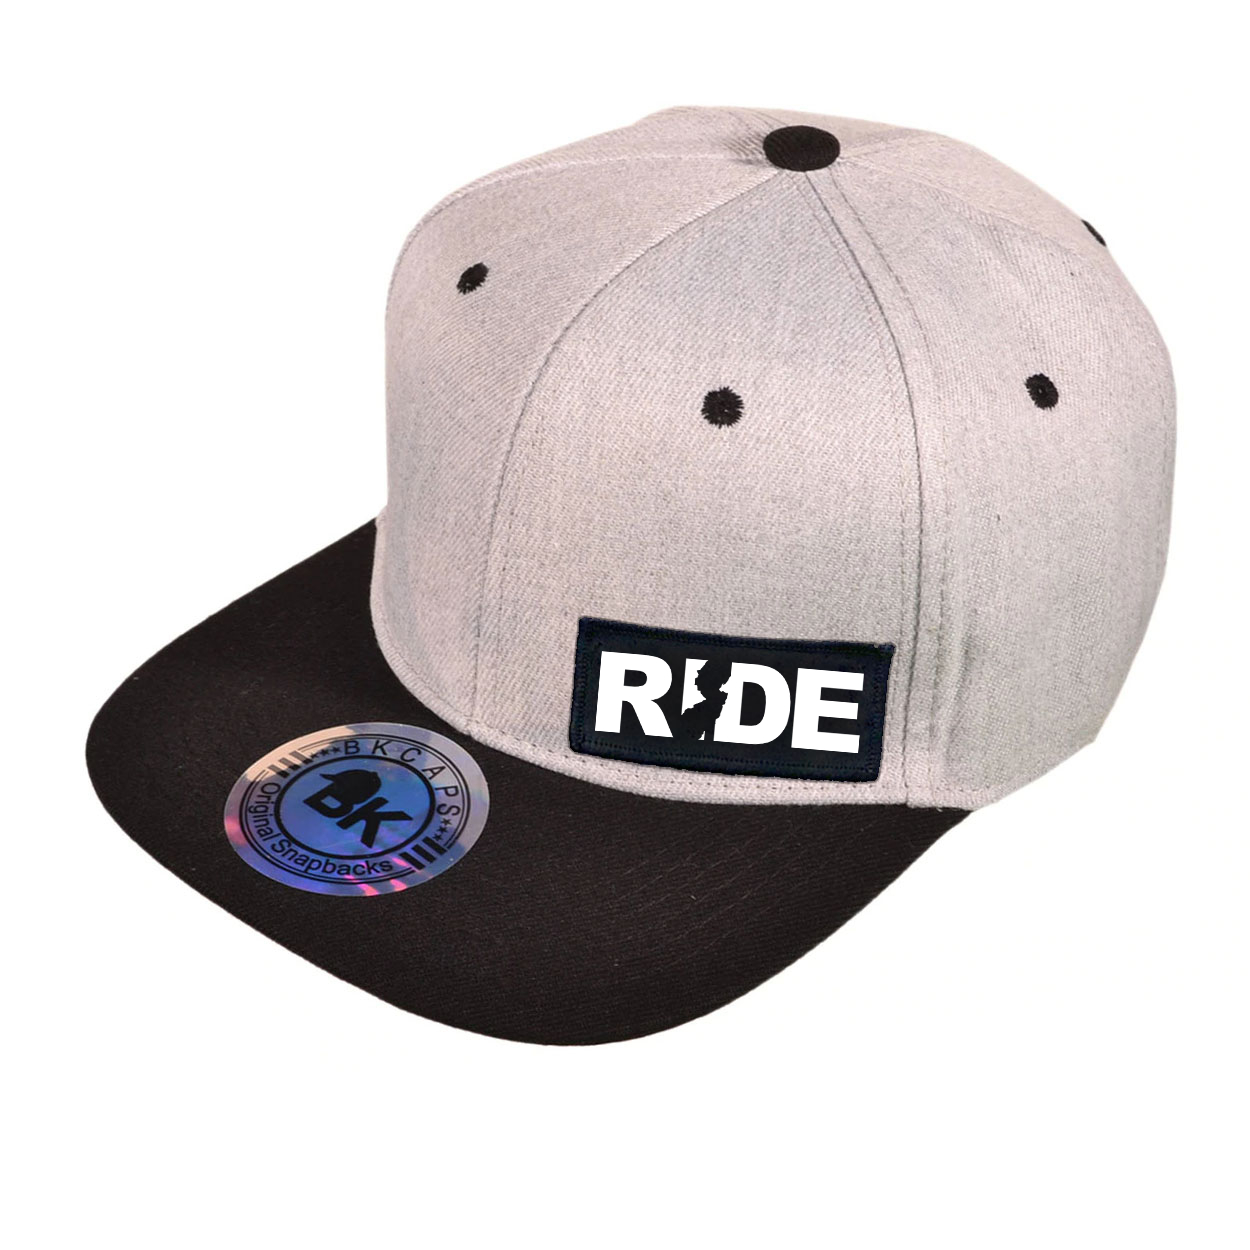 Ride New Jersey Night Out Woven Patch Snapback Flat Brim Hat Heather Gray/Black (White Logo)